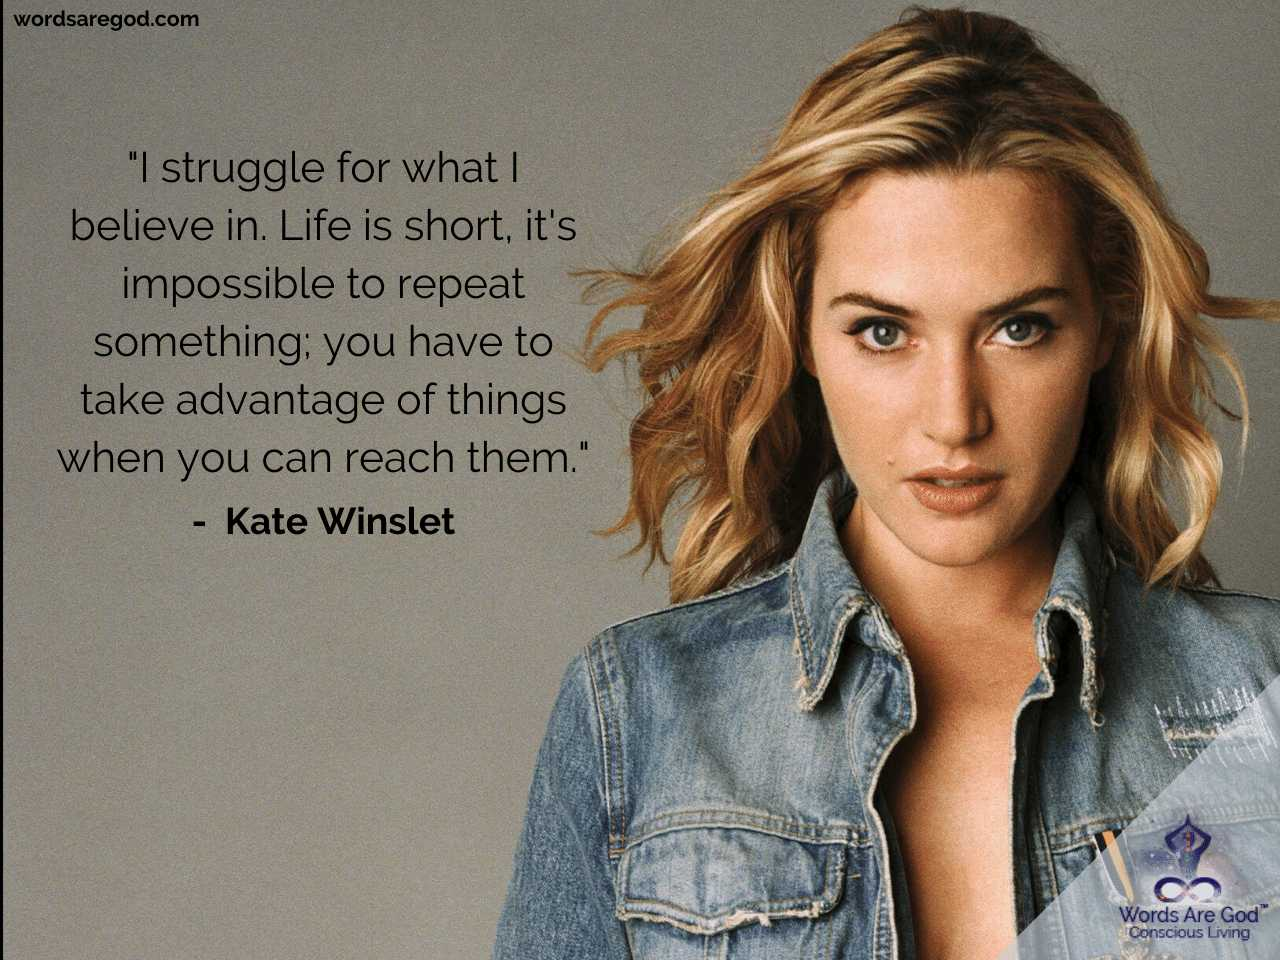 Kate Winslet Motivational Quotes by Kate Winslet